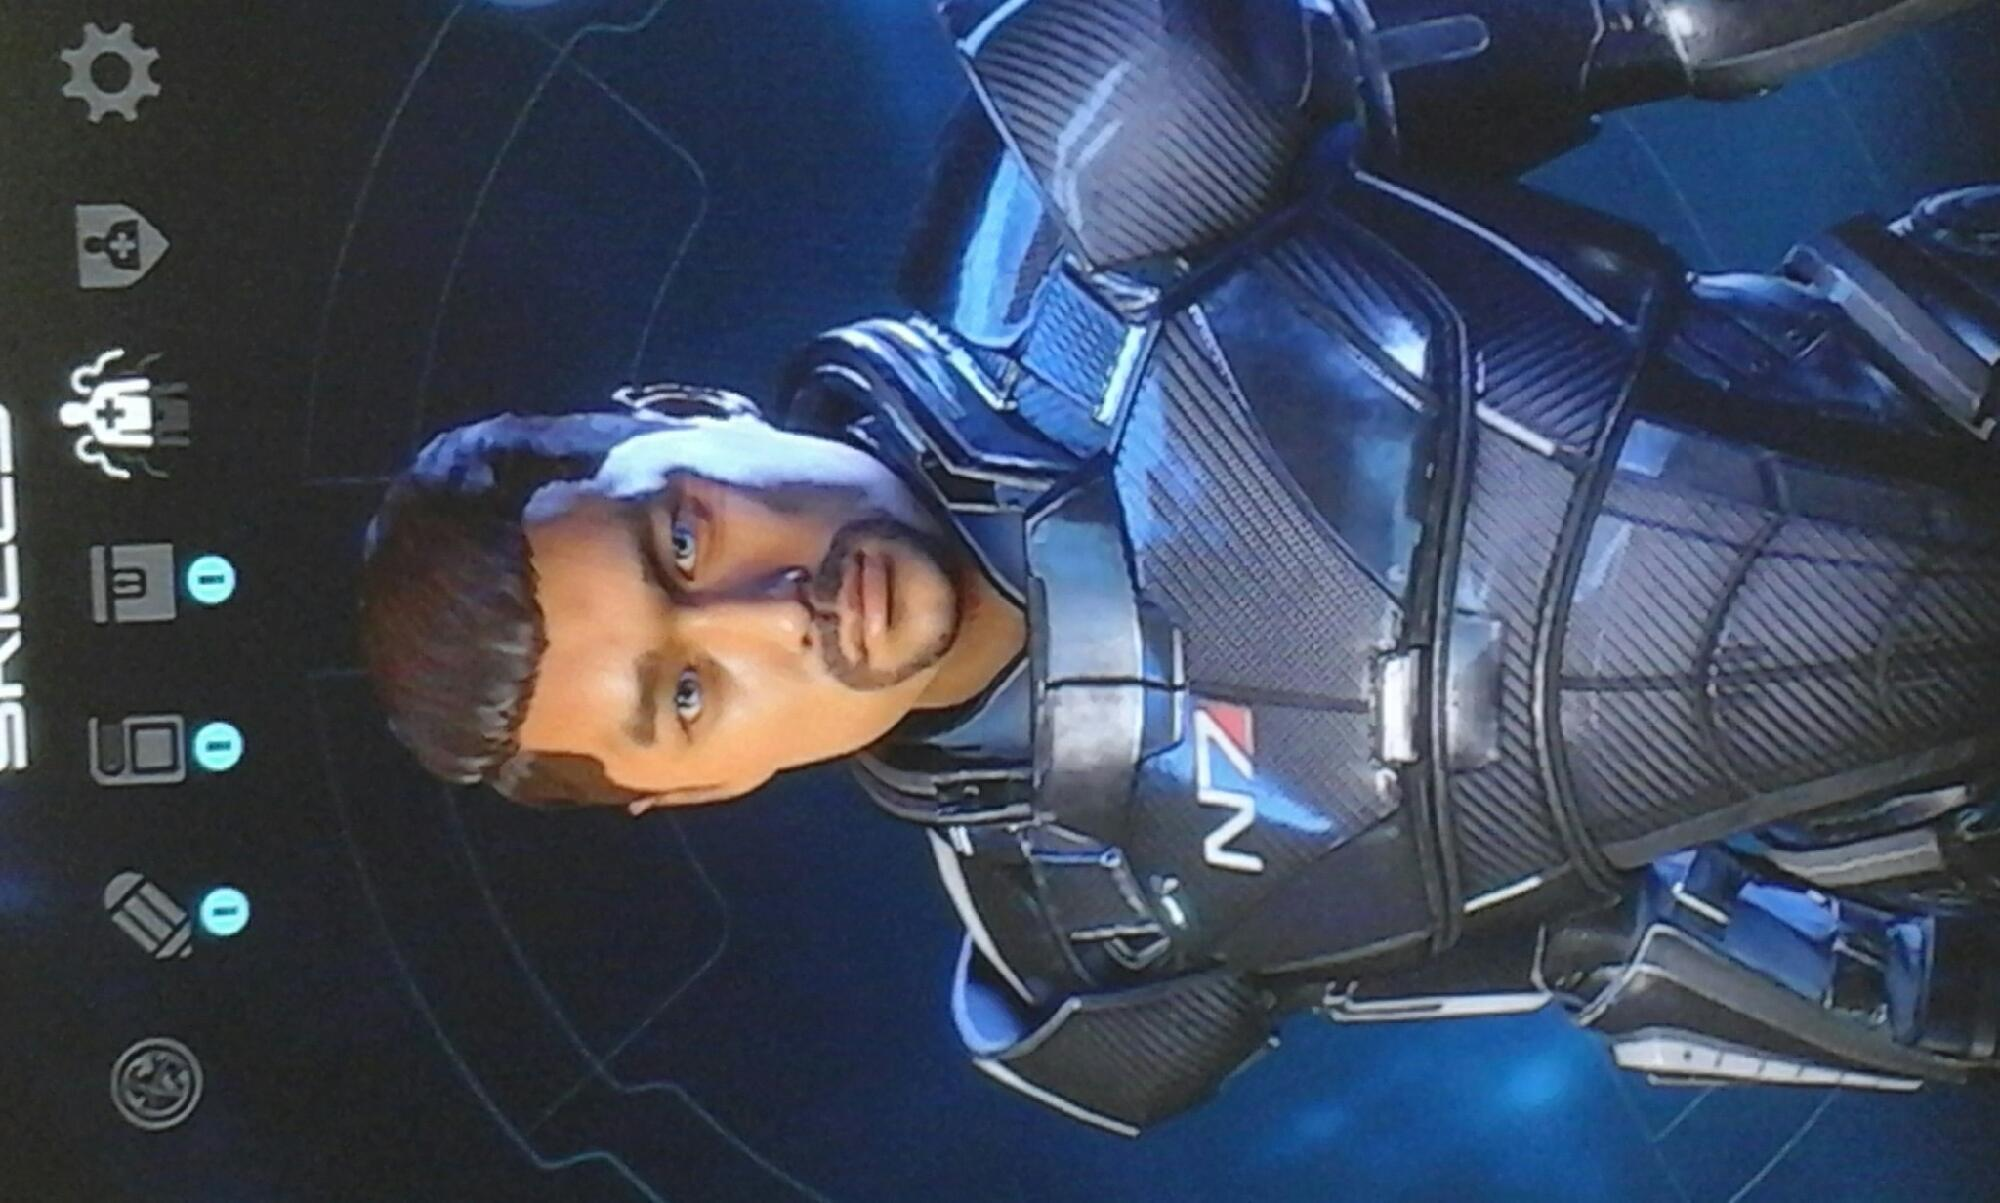 What does you ryder look like?